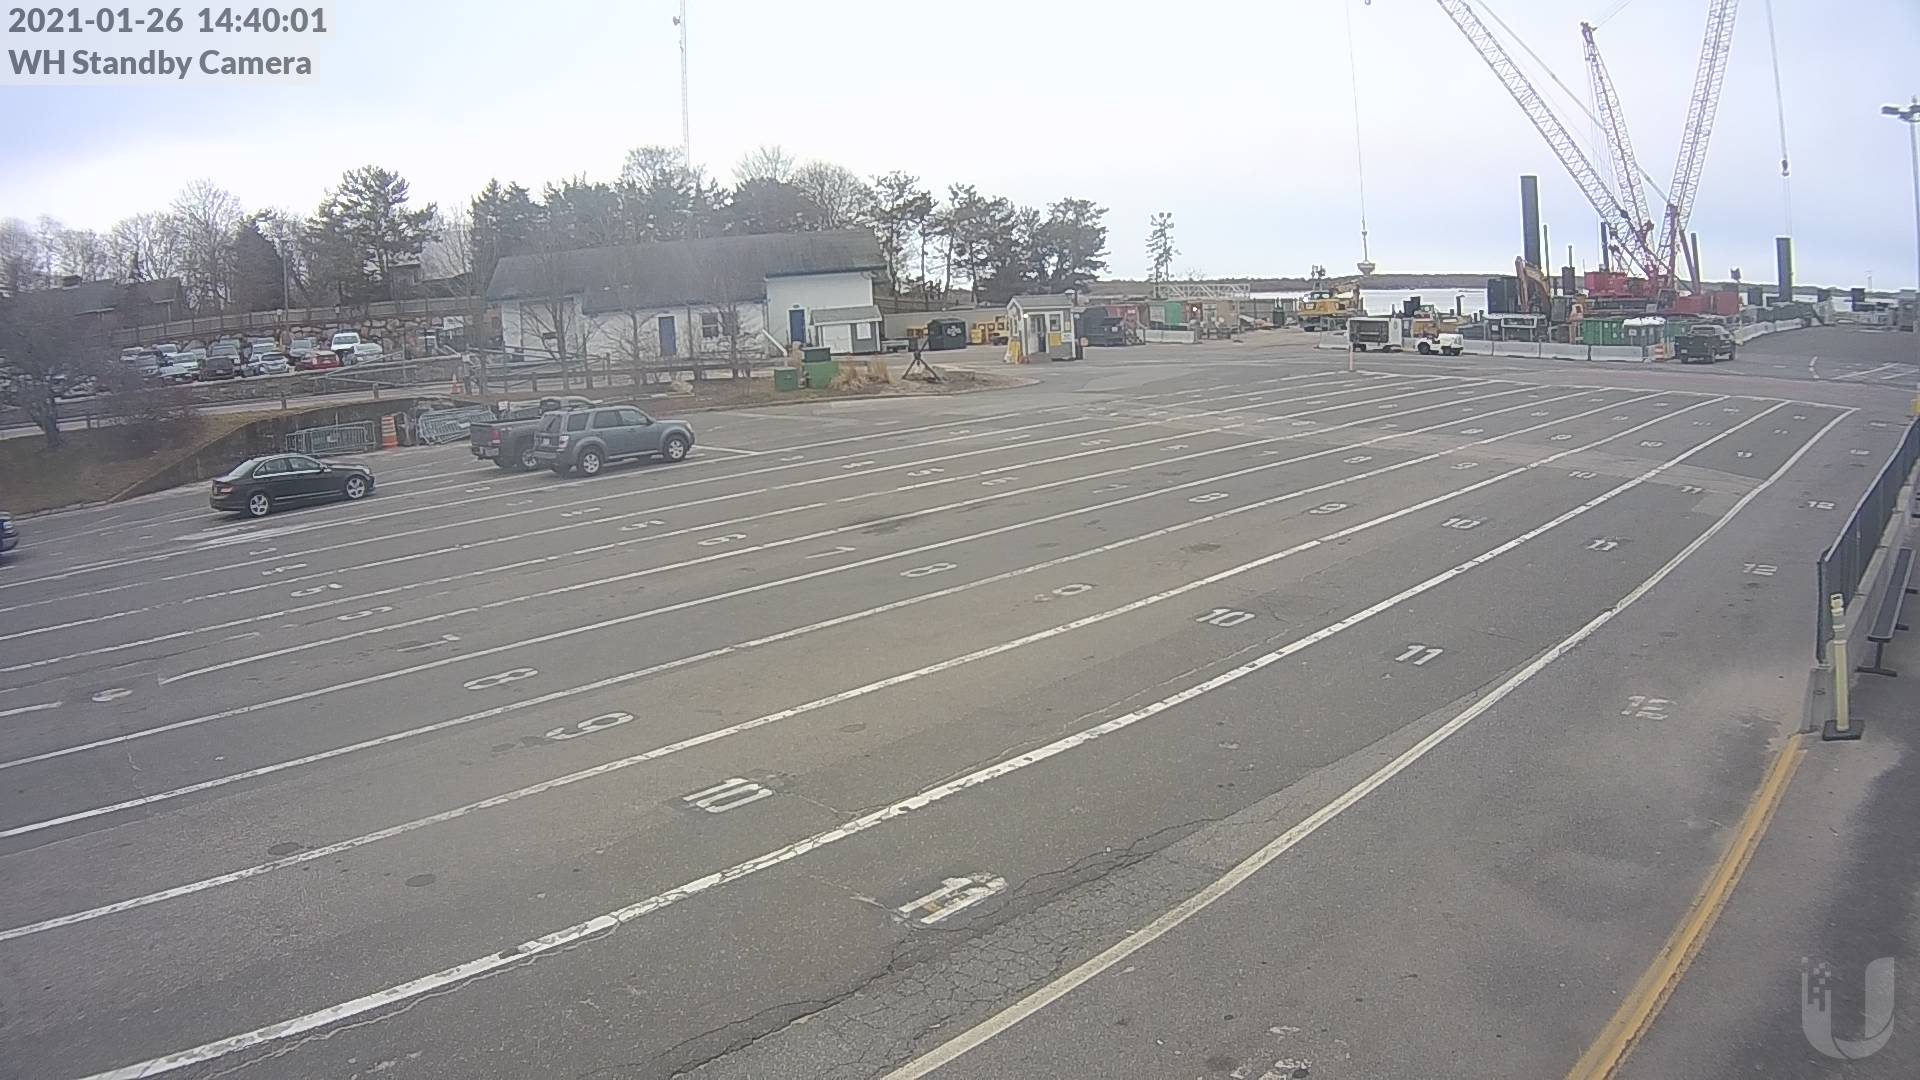 woods hole ferry standby line